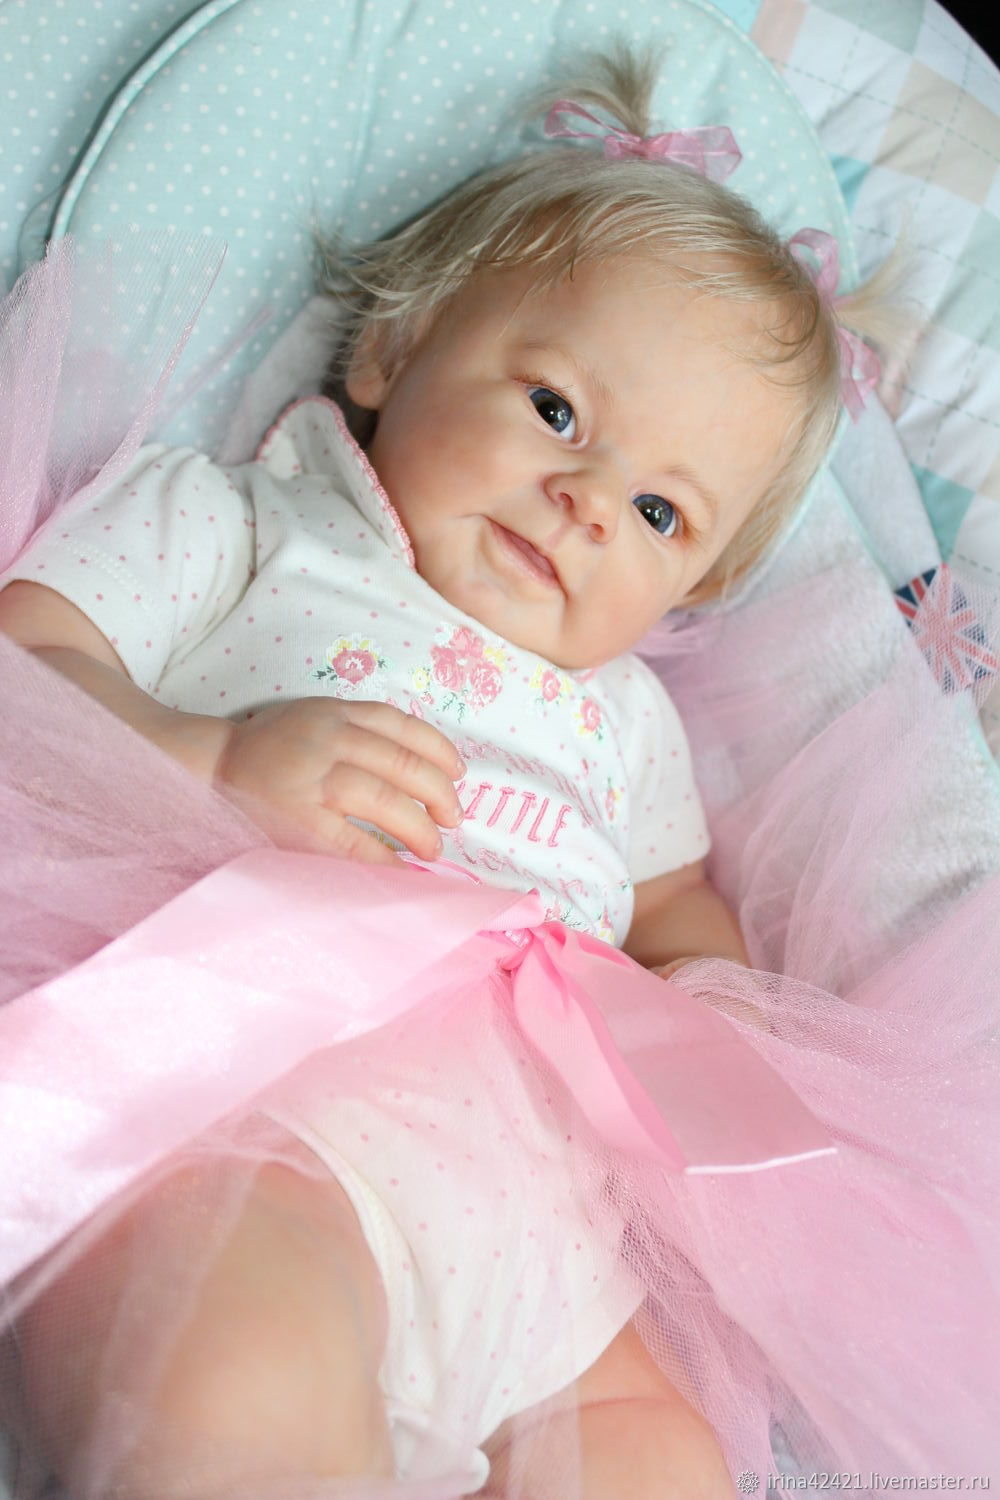 Stunning Prototype Reborn Baby For Sale - Our Life With